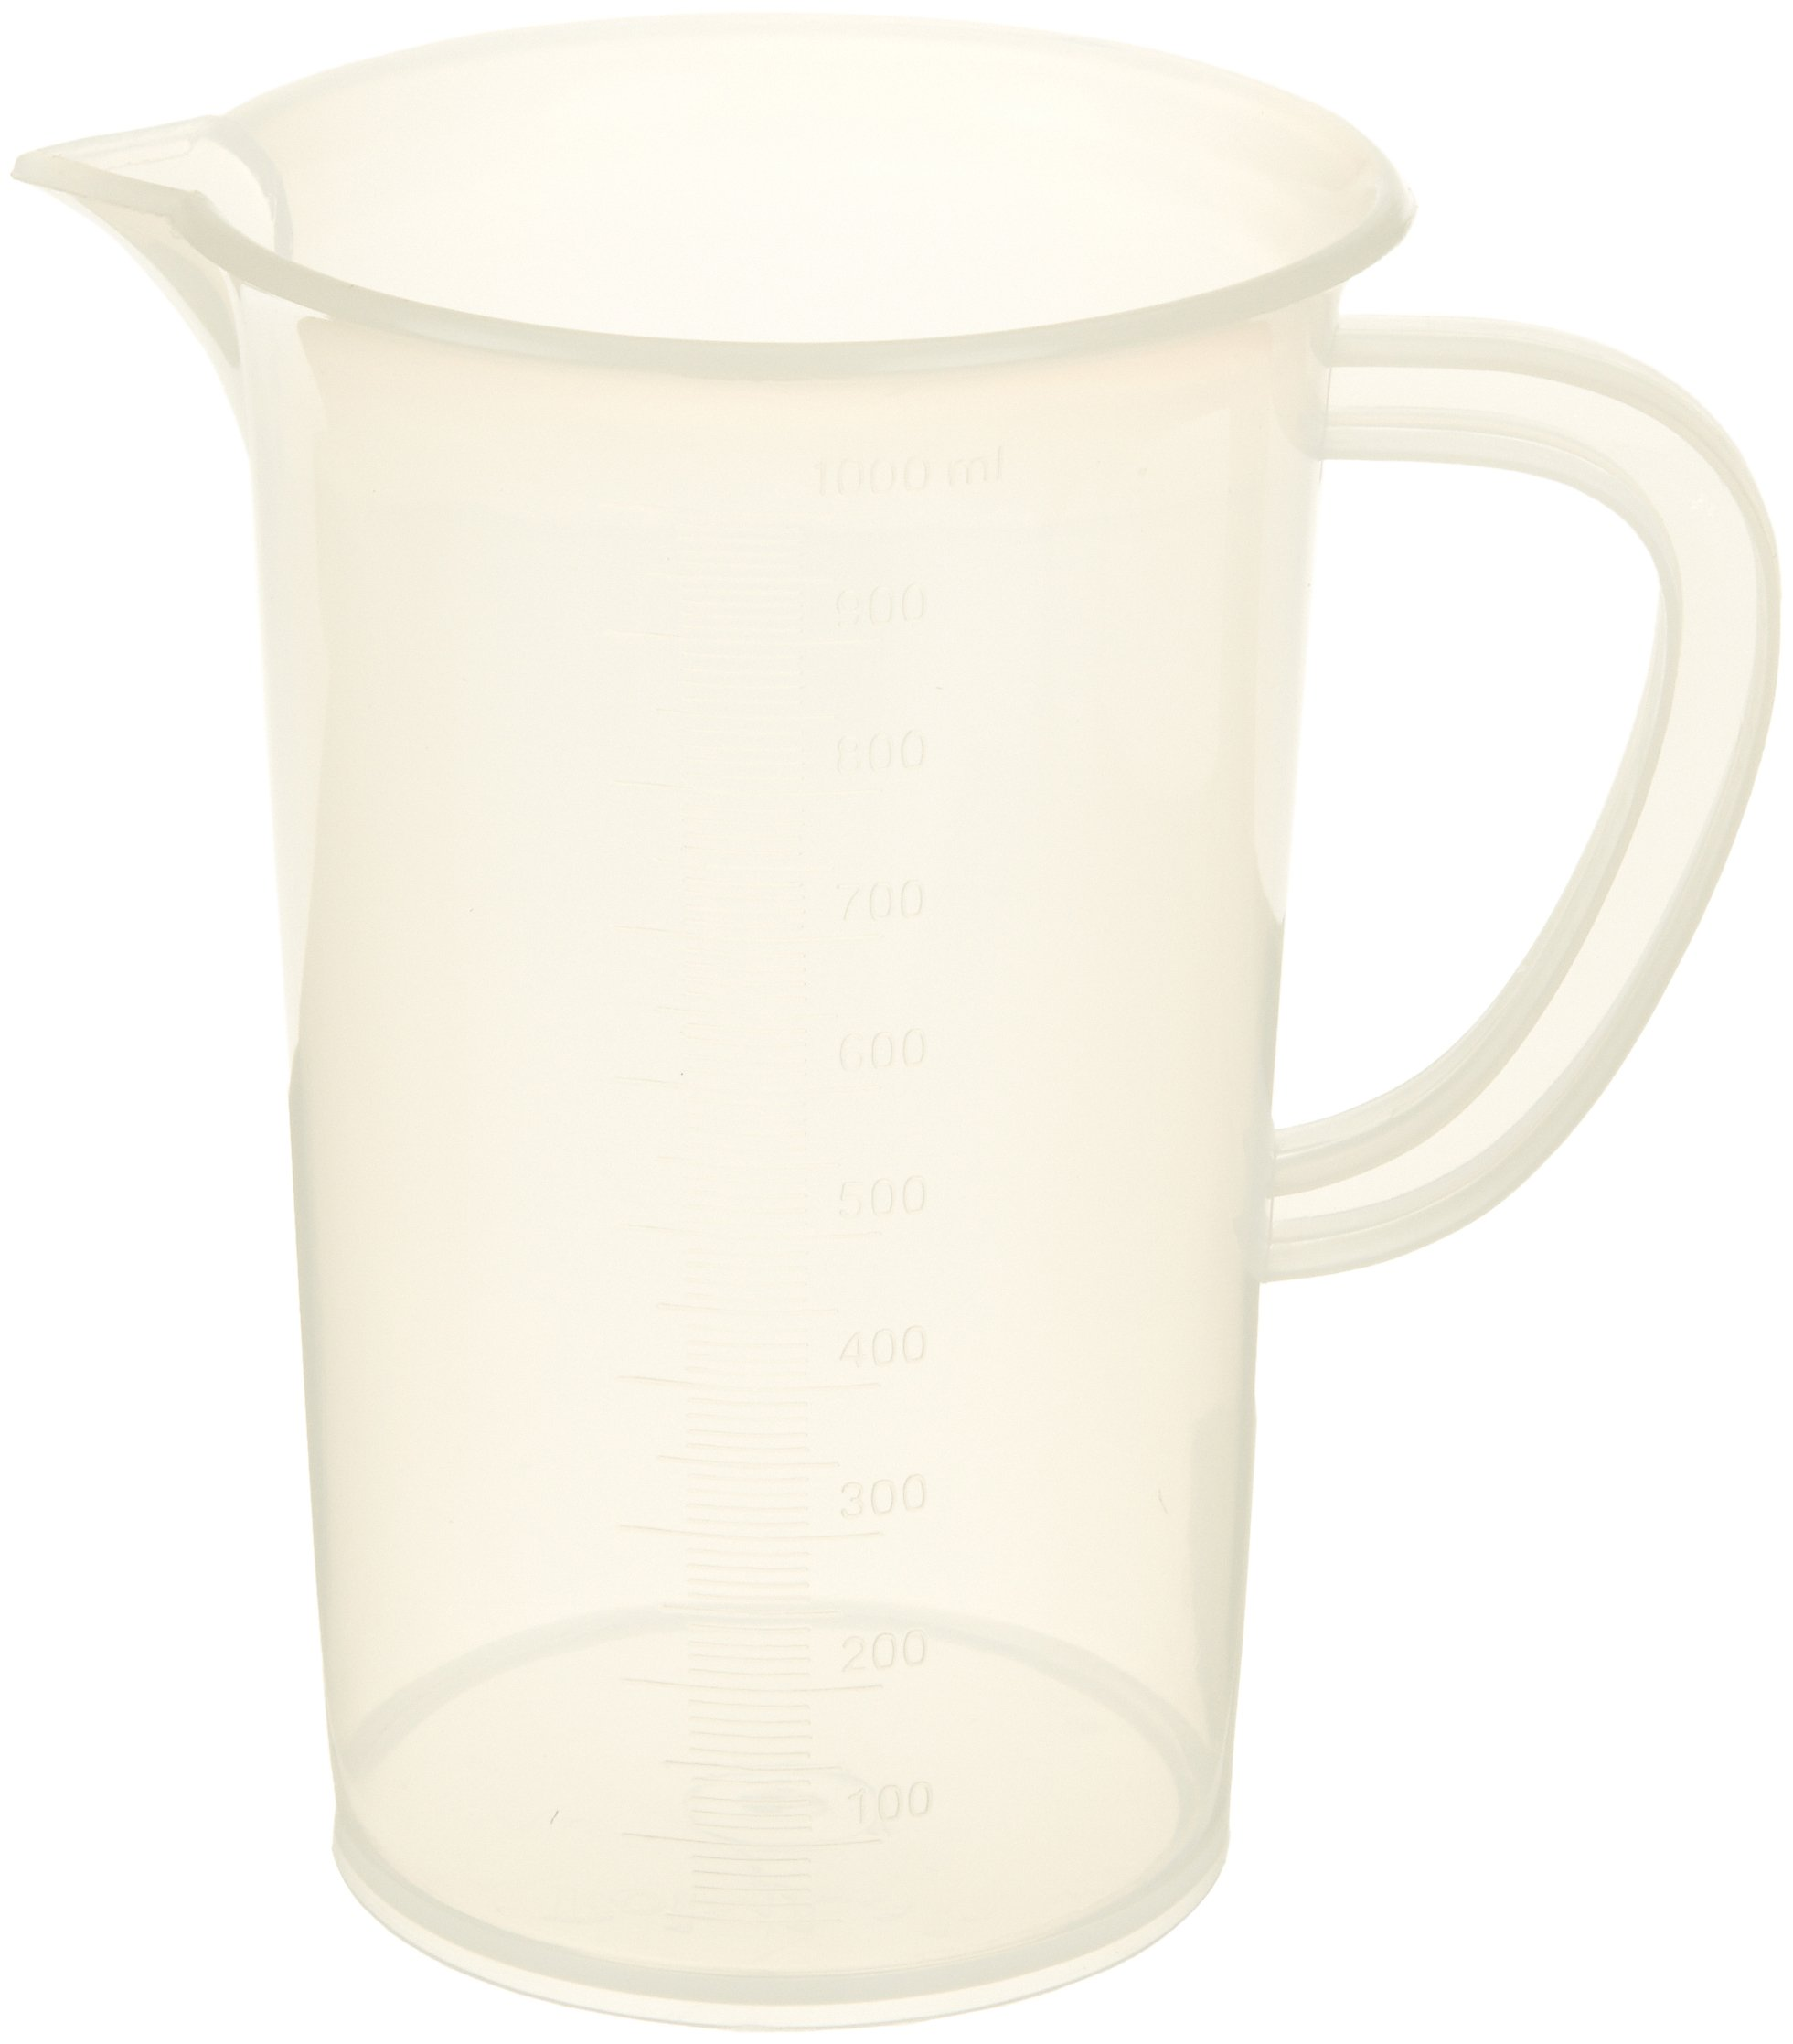 United Scientific 81103 Polypropylene Tall Form Pitchers, 1000ml Capacity (Pack of 6)